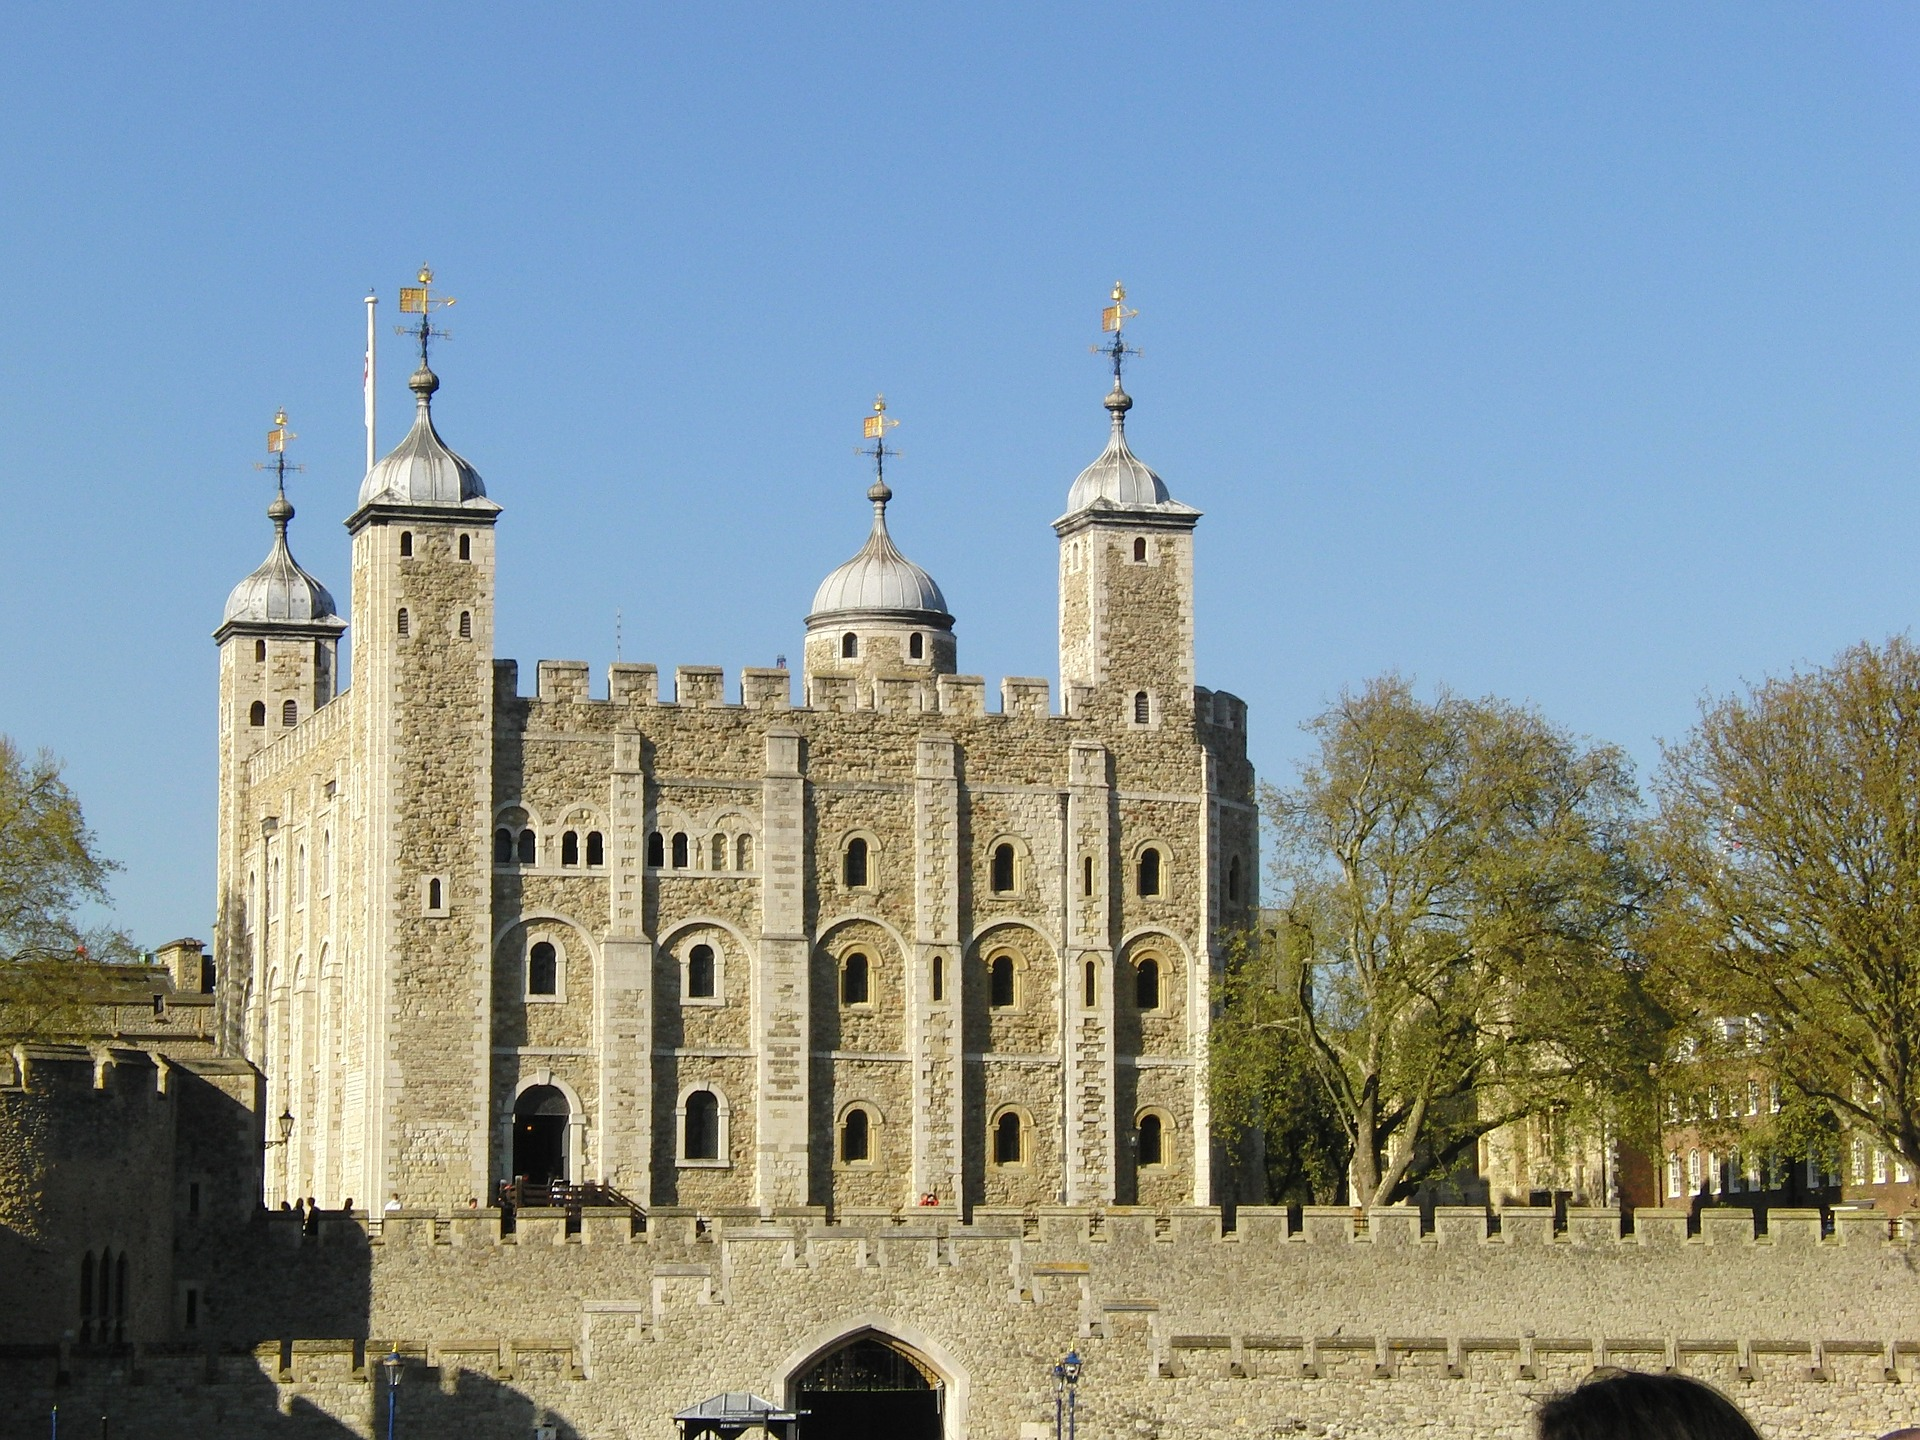 tower-of-london-353868_1920